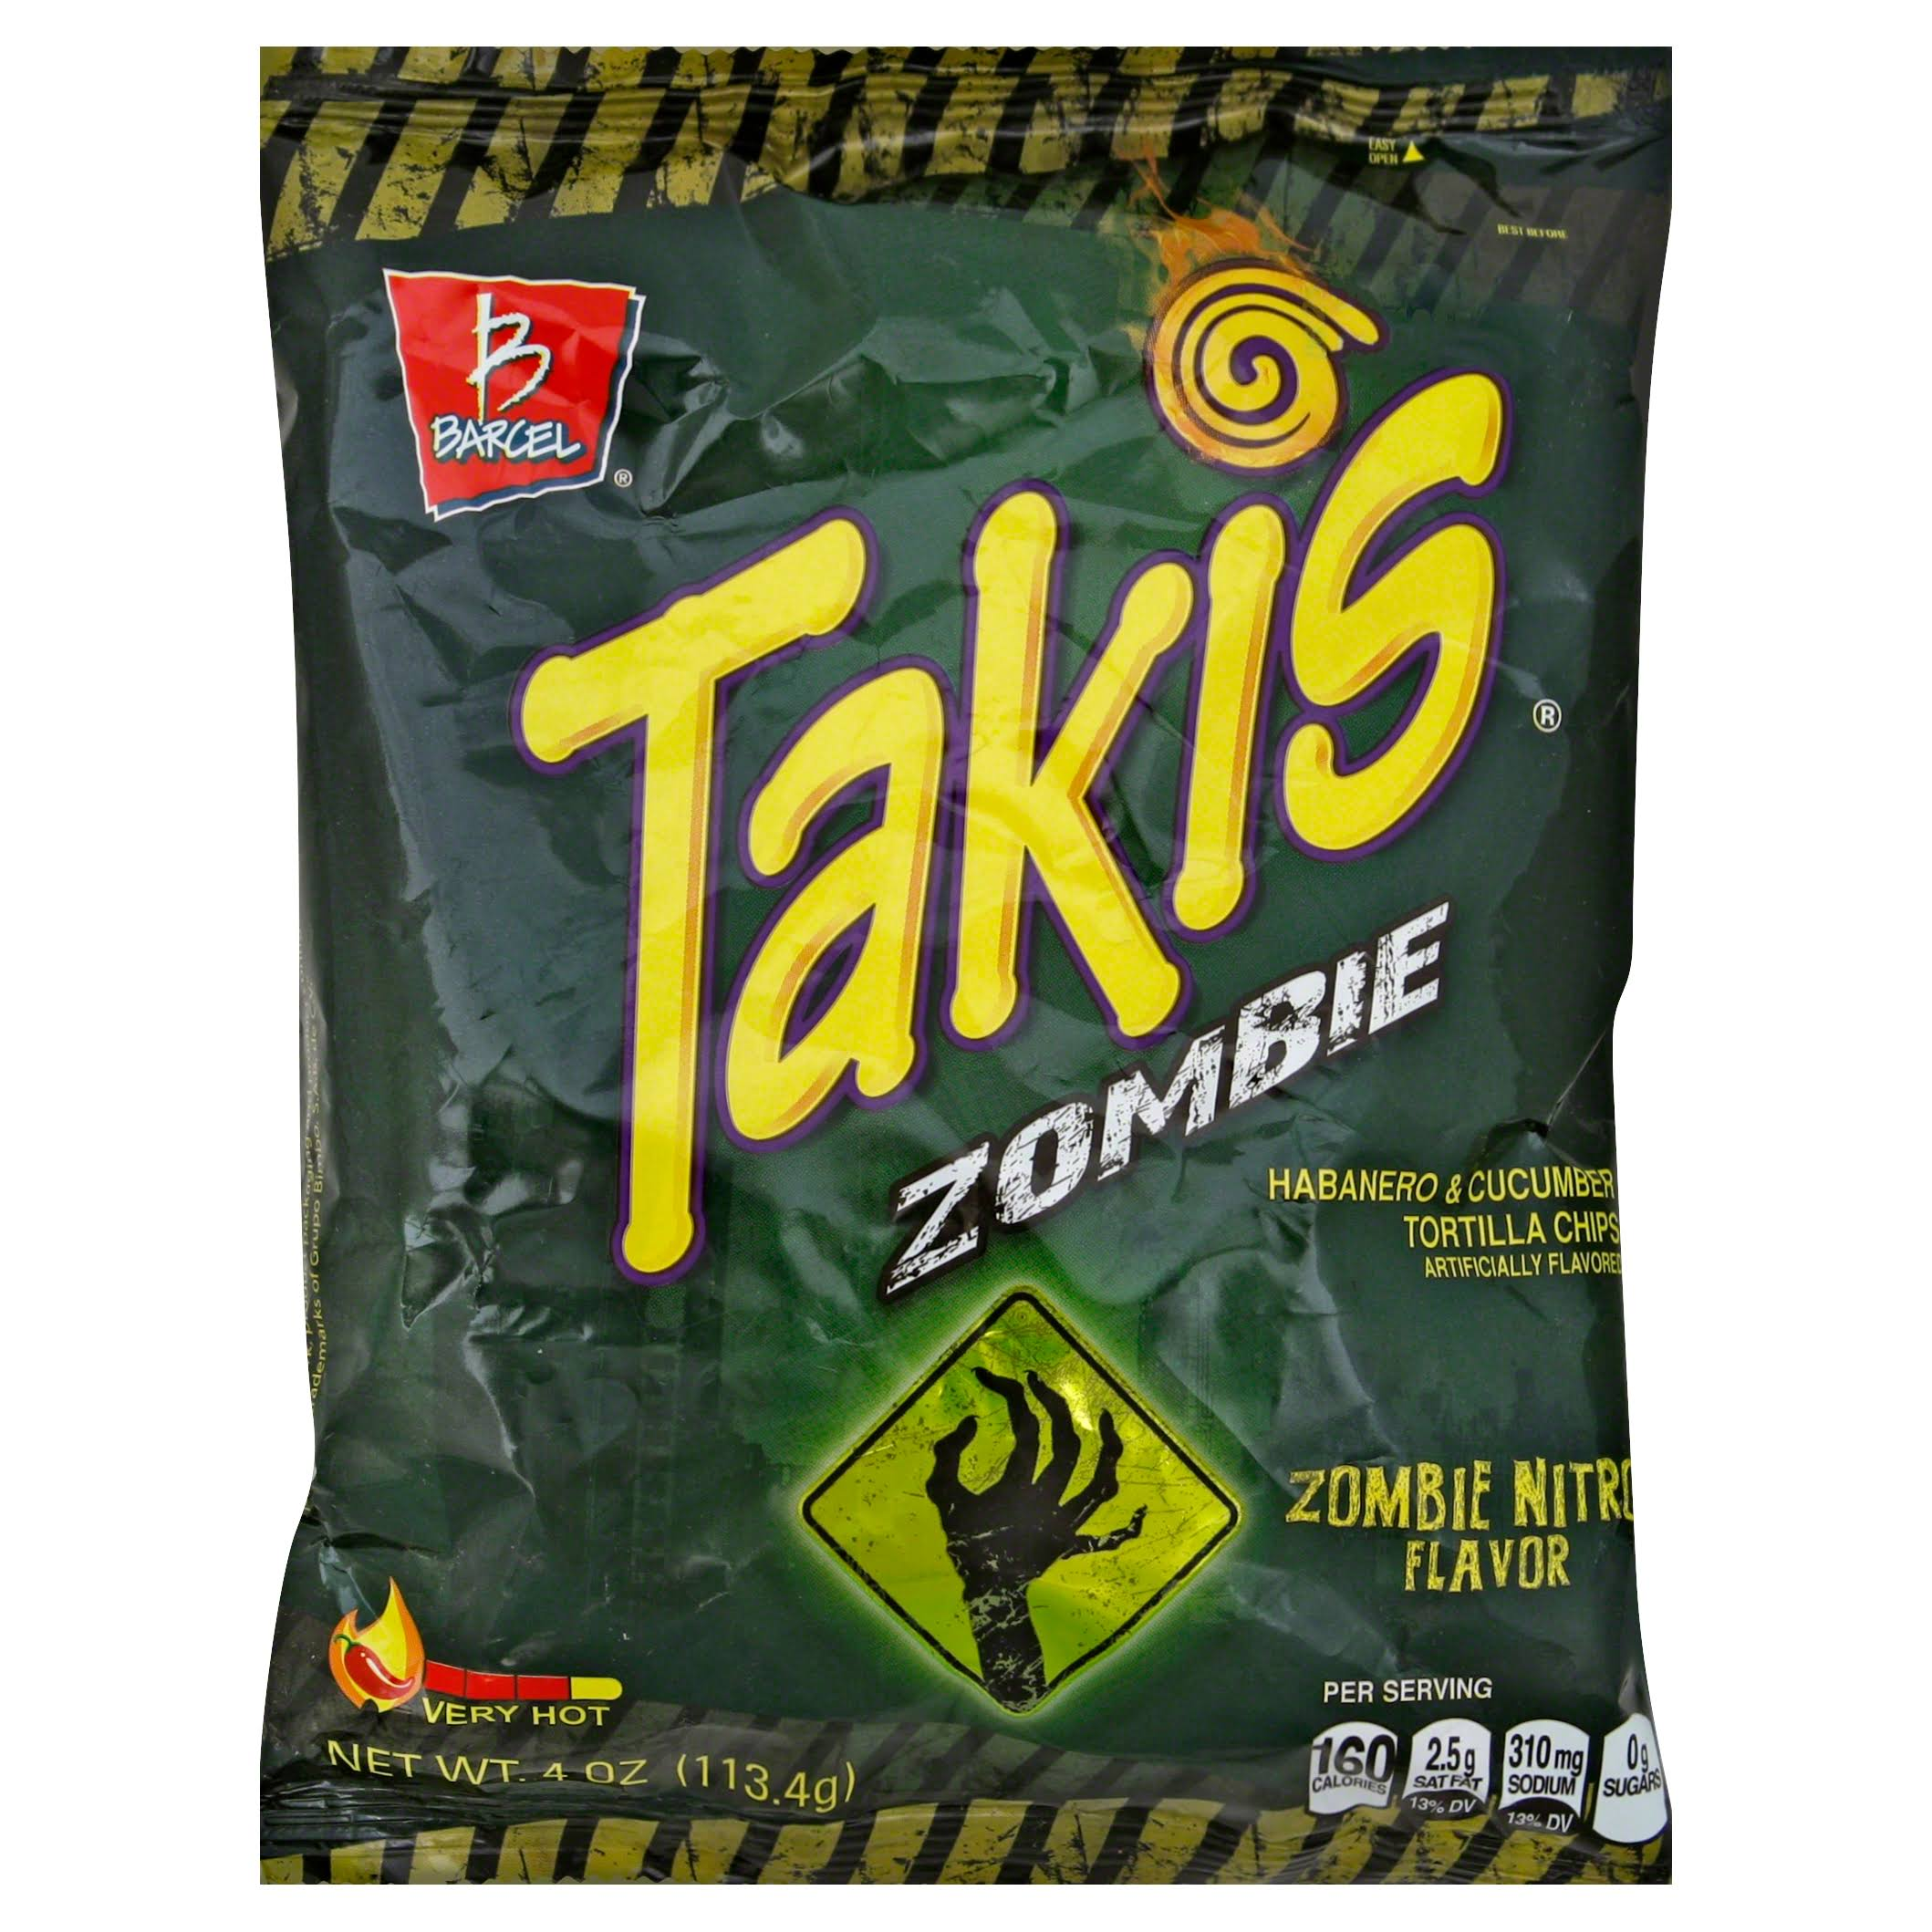 Barcel Takis Zombie Habanero and Cucumber Tortilla Chips - 4oz